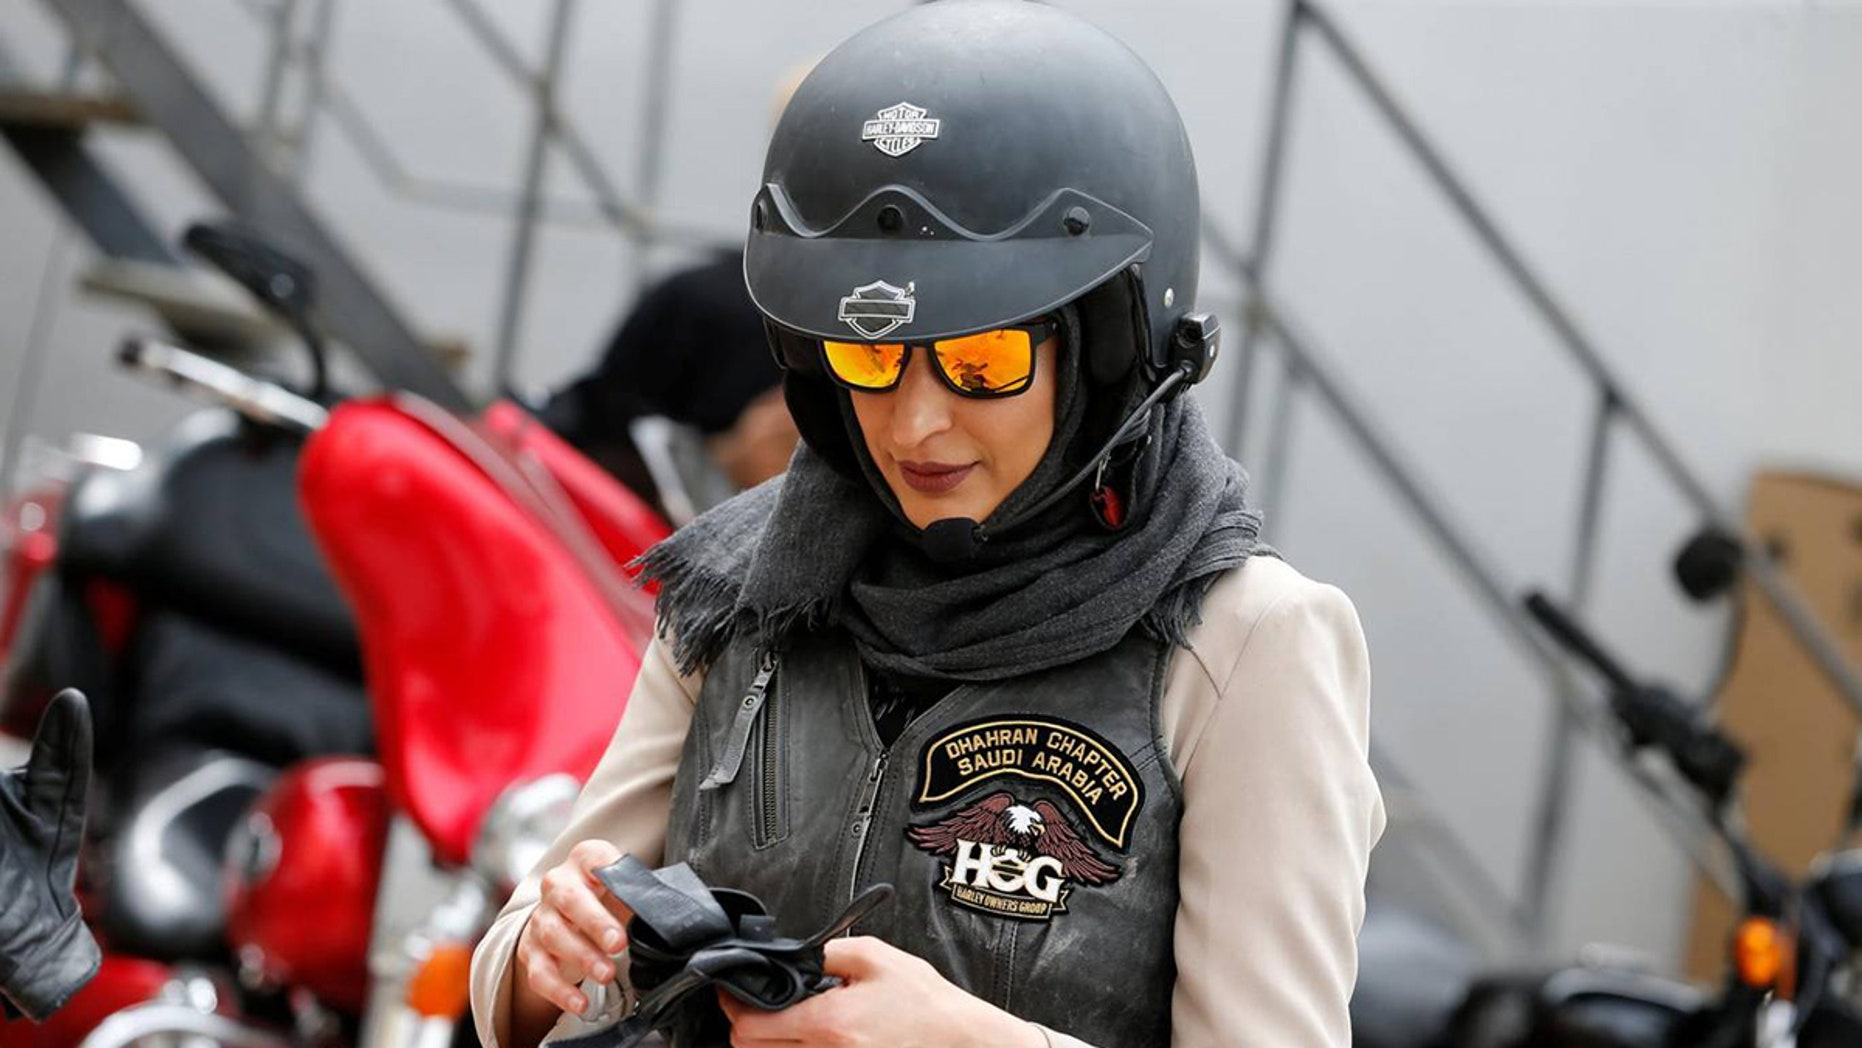 Women are learning to ride motorcycles in Saudia Arabia